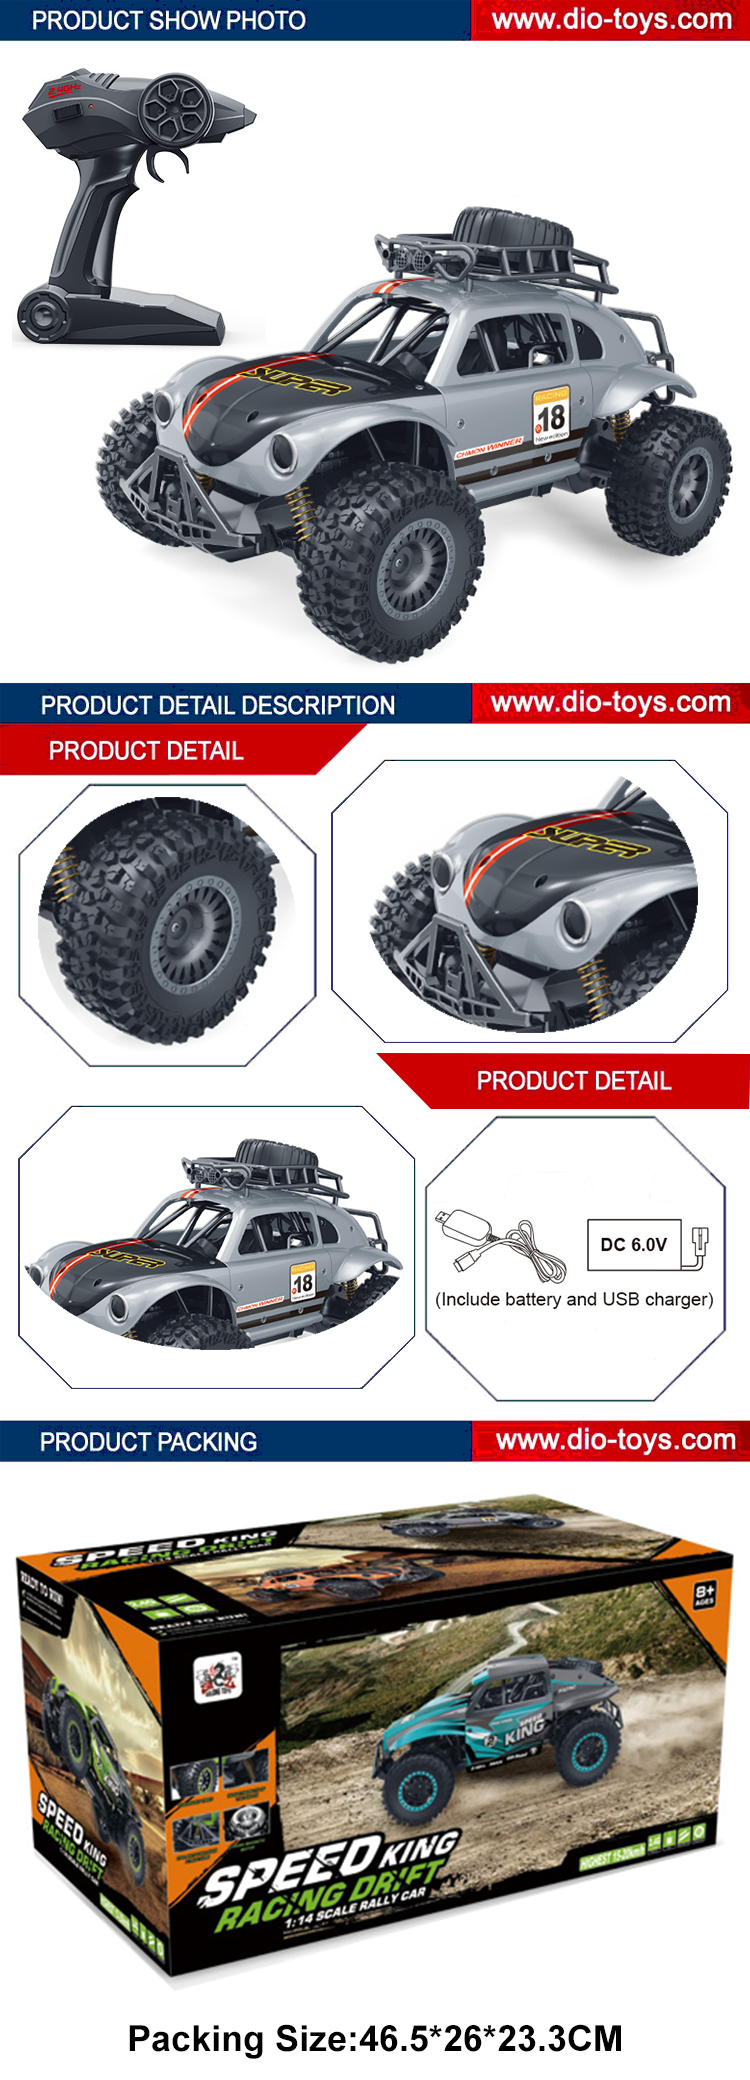 new item electronic 1/14 scale 2.4G high speed cars rc toy